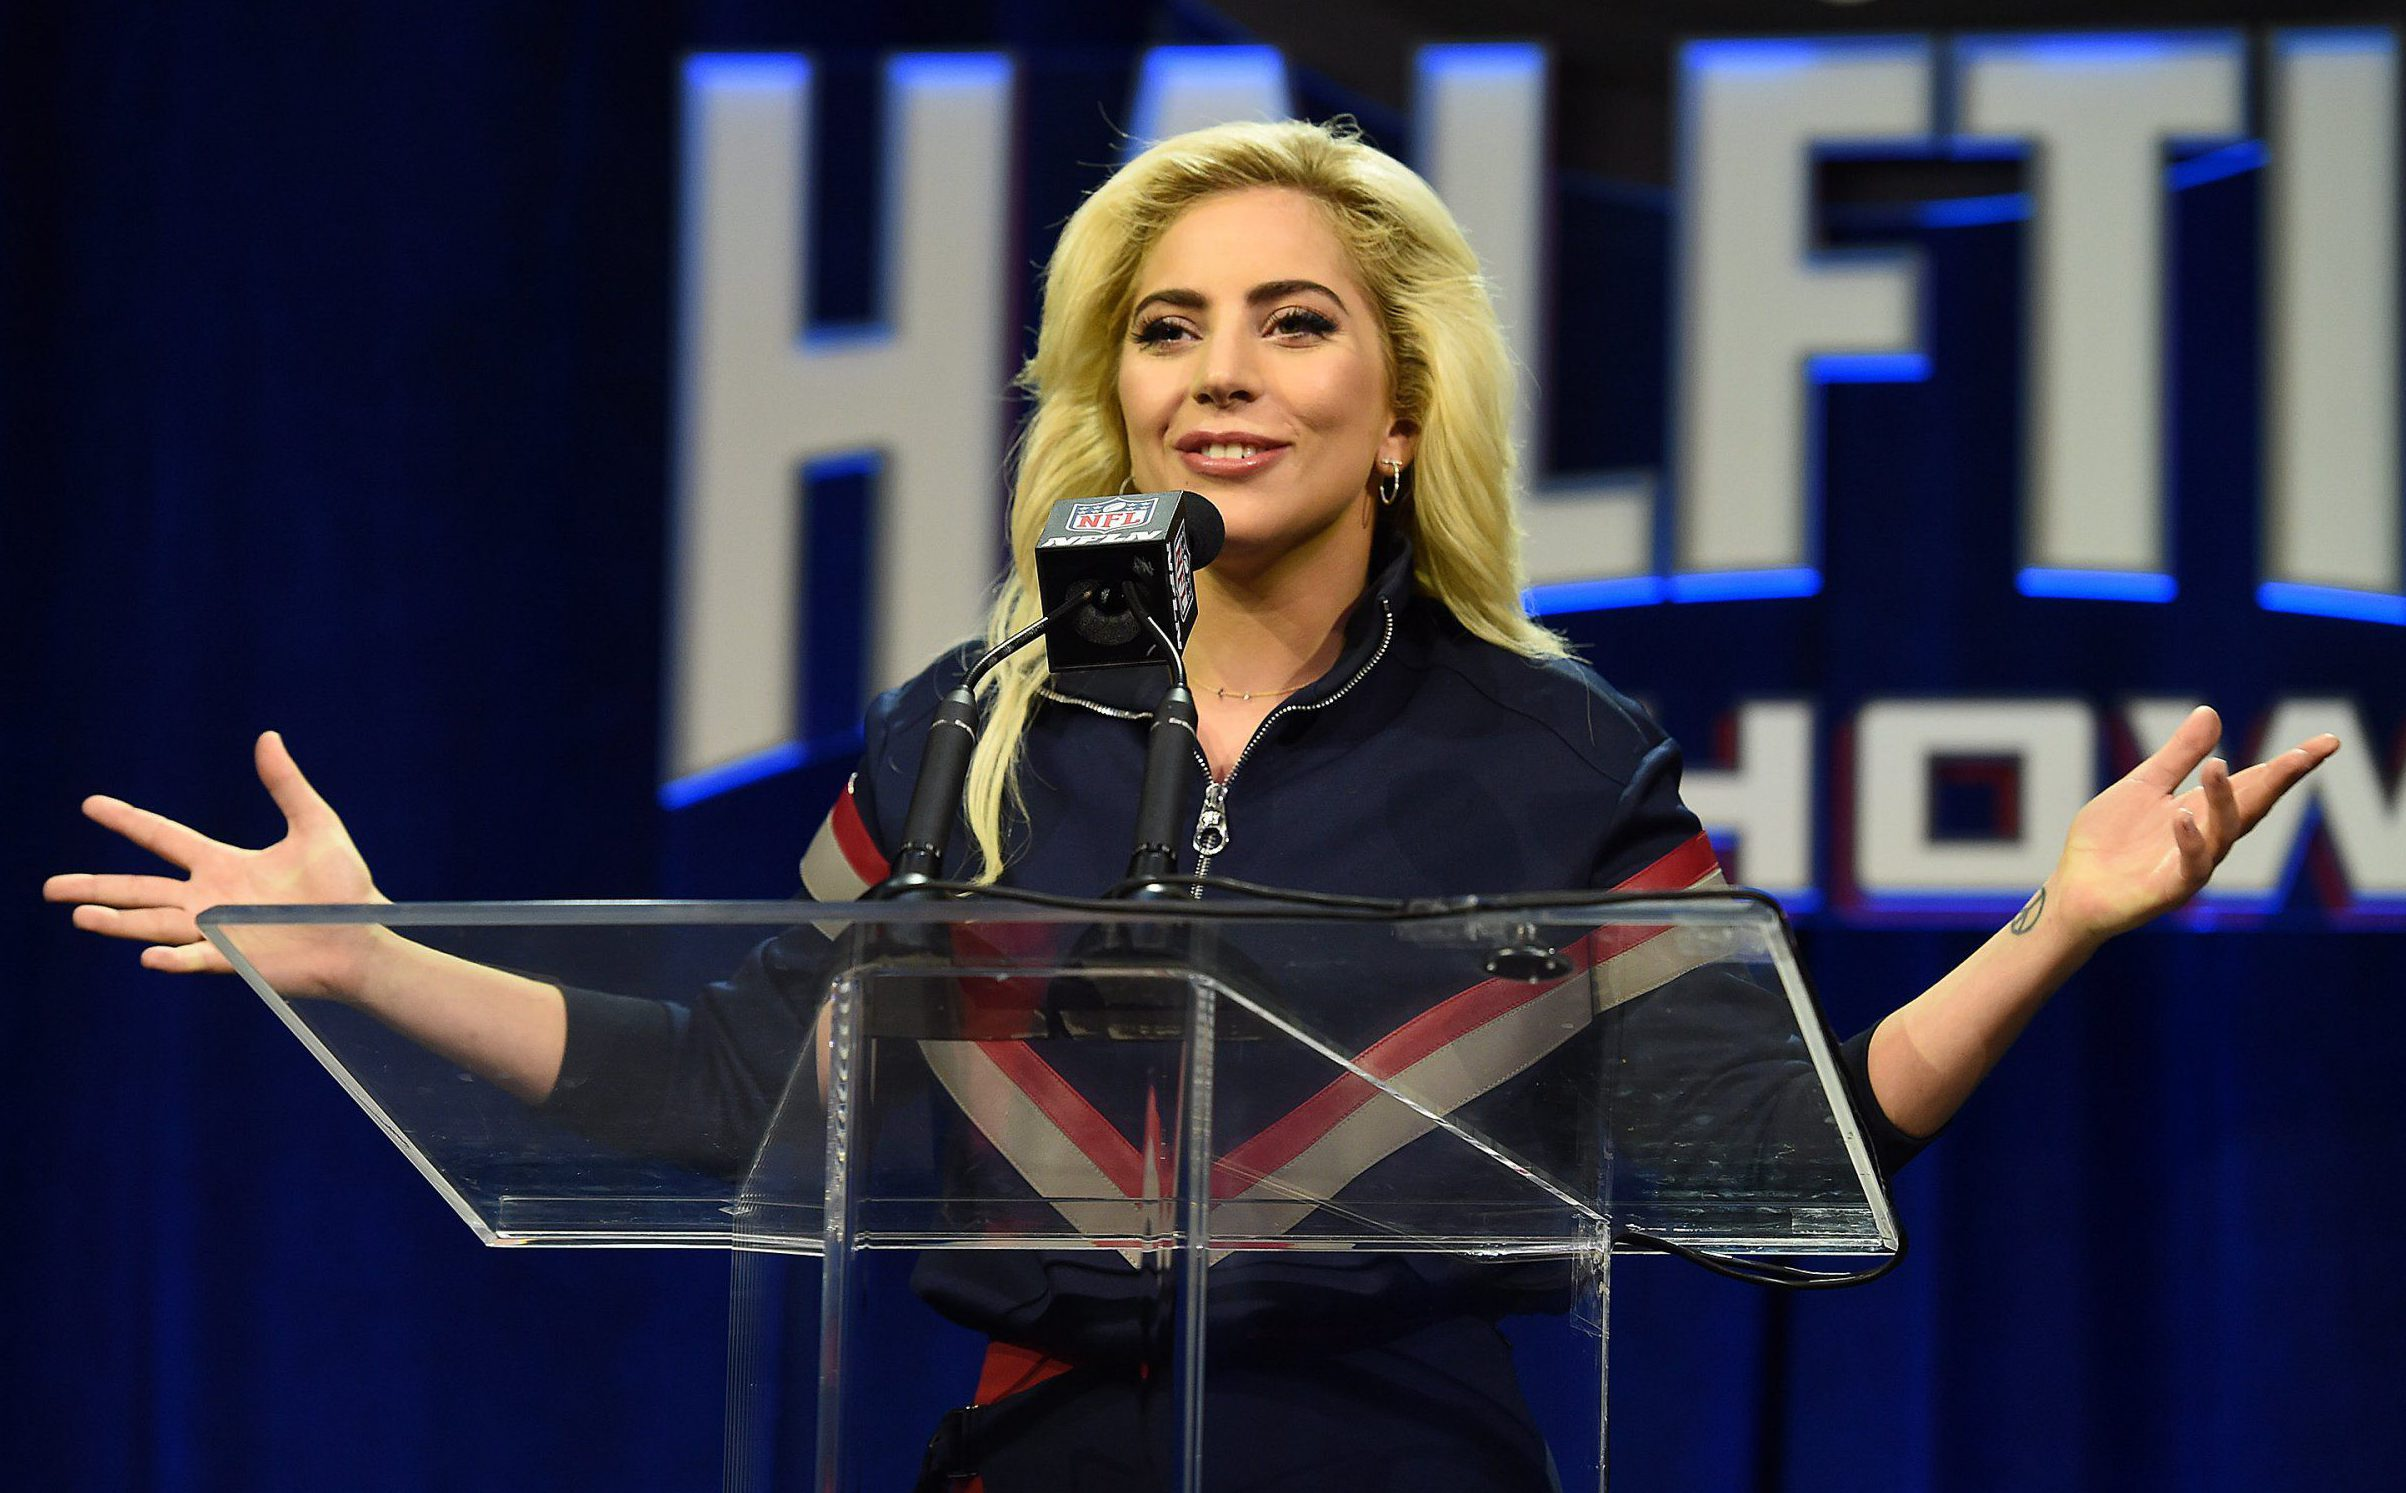 Mandatory Credit: Photo by Frank Micelotta/REX/Shutterstock (8254469w) Lady Gaga Super Bowl LI Pepsi Zero Sugar Halftime Show Press Conference, Houston, Texas, USA - 02 Feb 2017